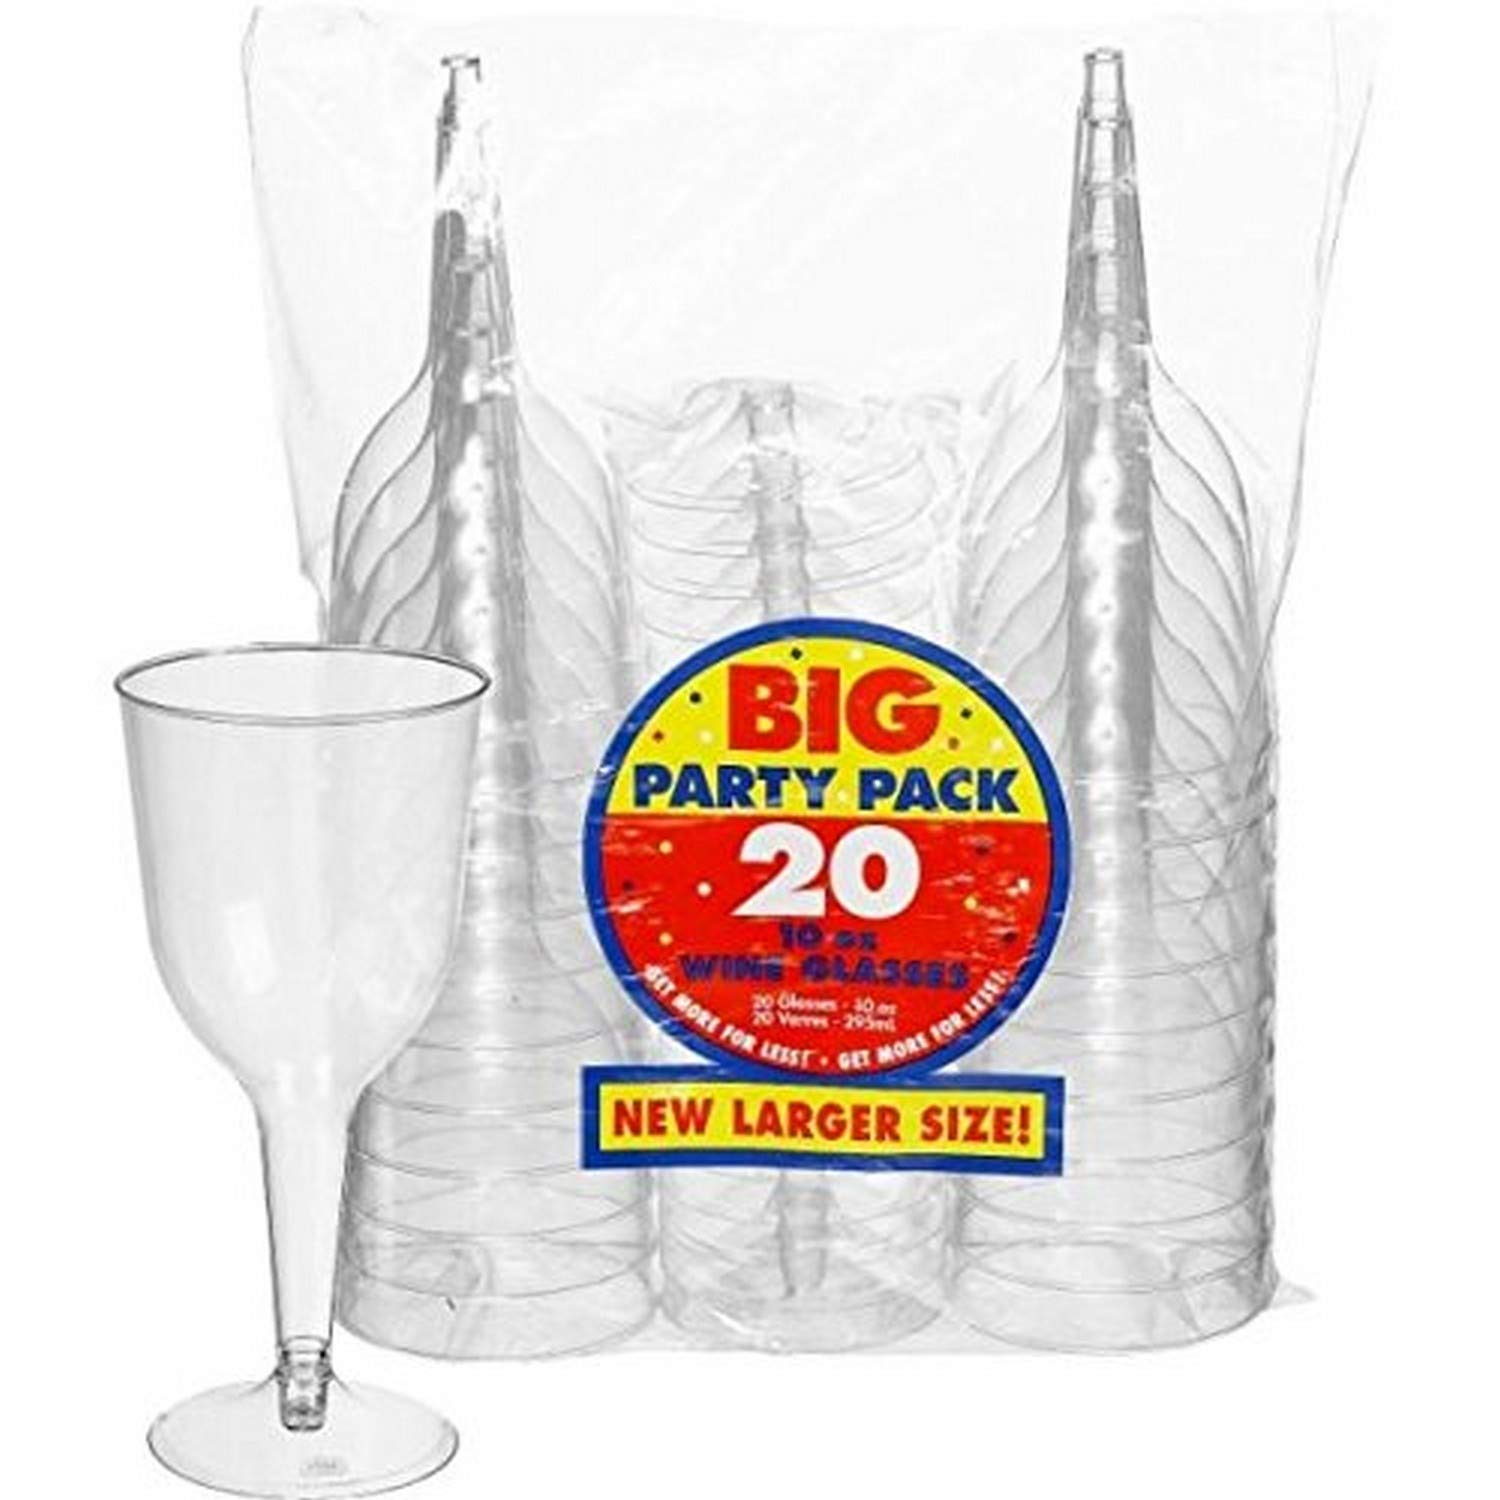 Big Party Pack Clear Plastic Wine Glasses   10 oz.   Pack of 20   Party Supply